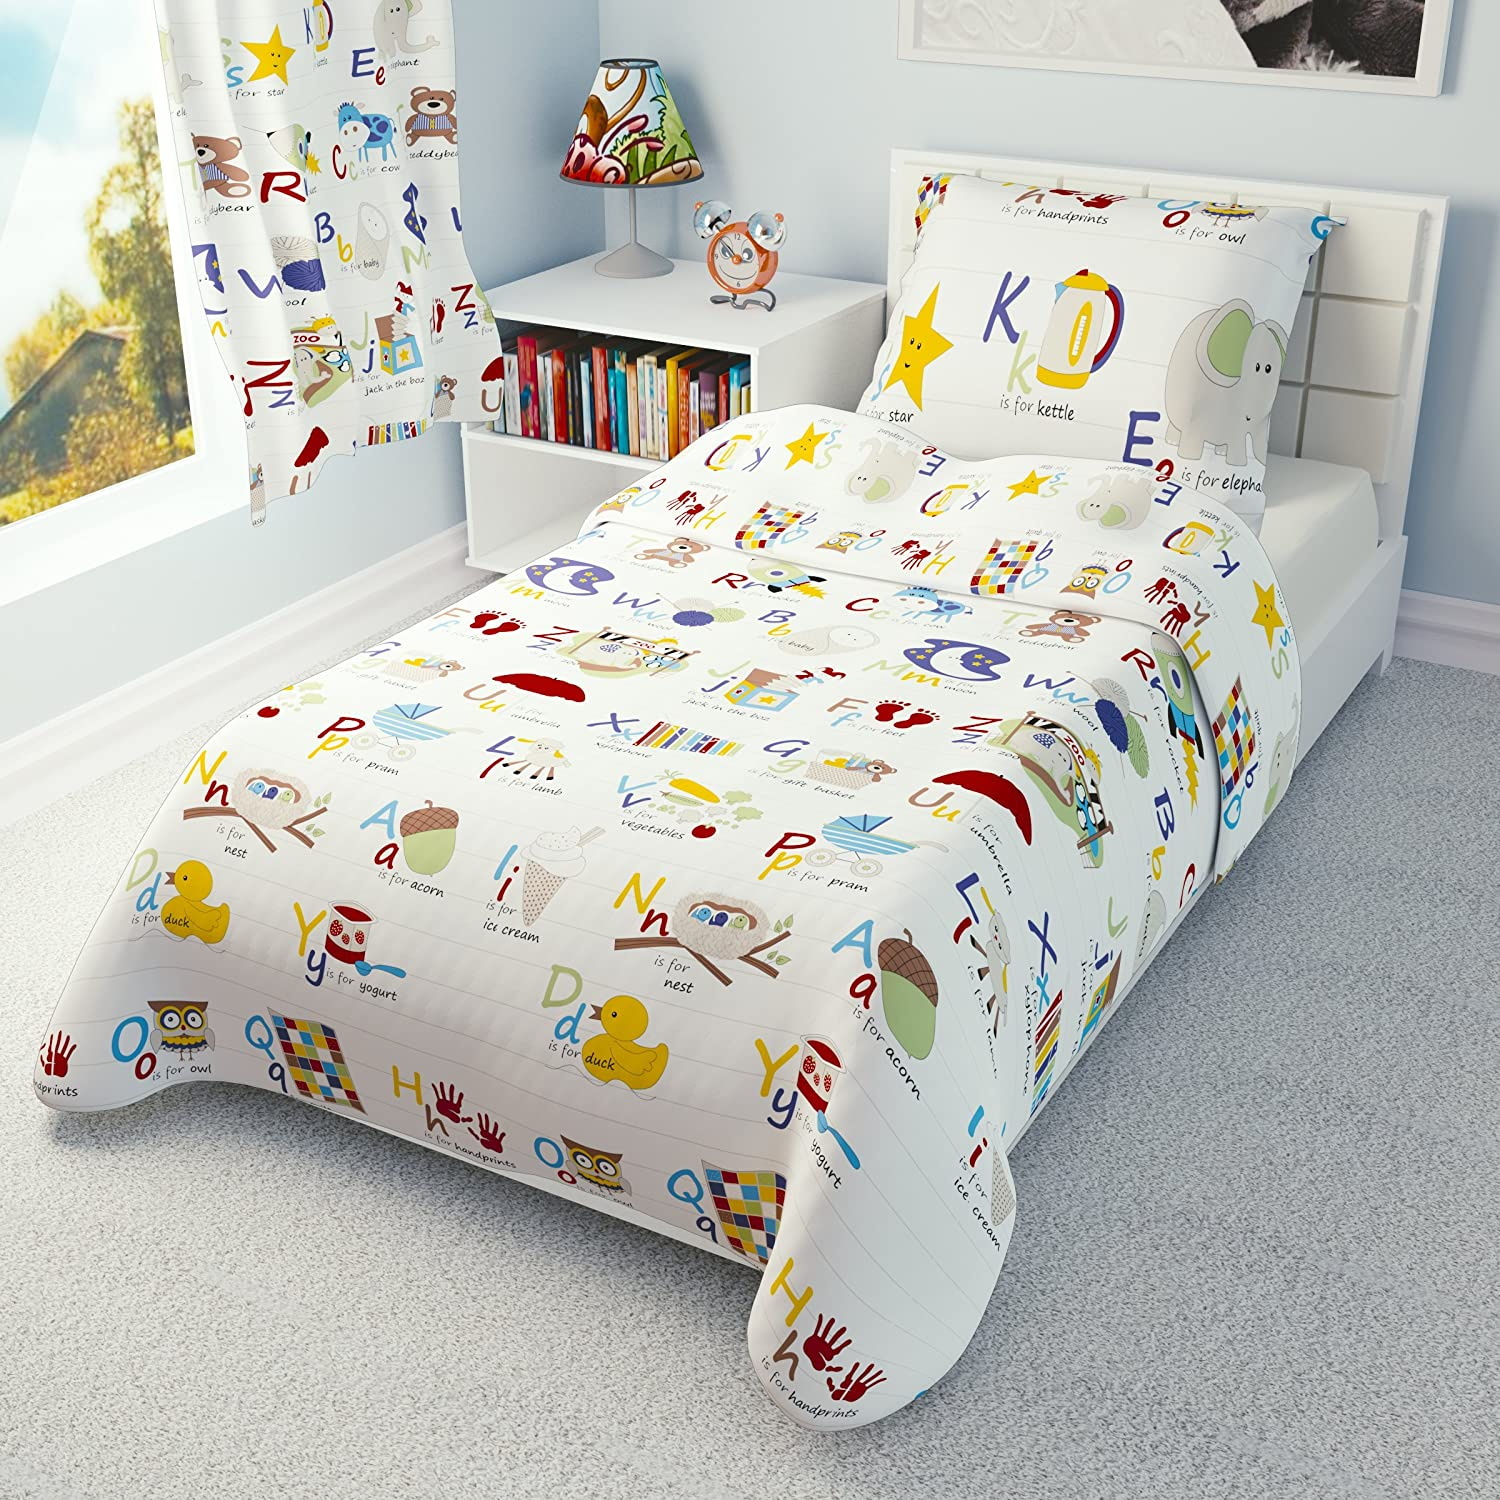 Babies Island IKEA Cot Bedding Duvet Cover Pillowcase 110 x 125 cm - many designs available (Alphabet) Babies-Island